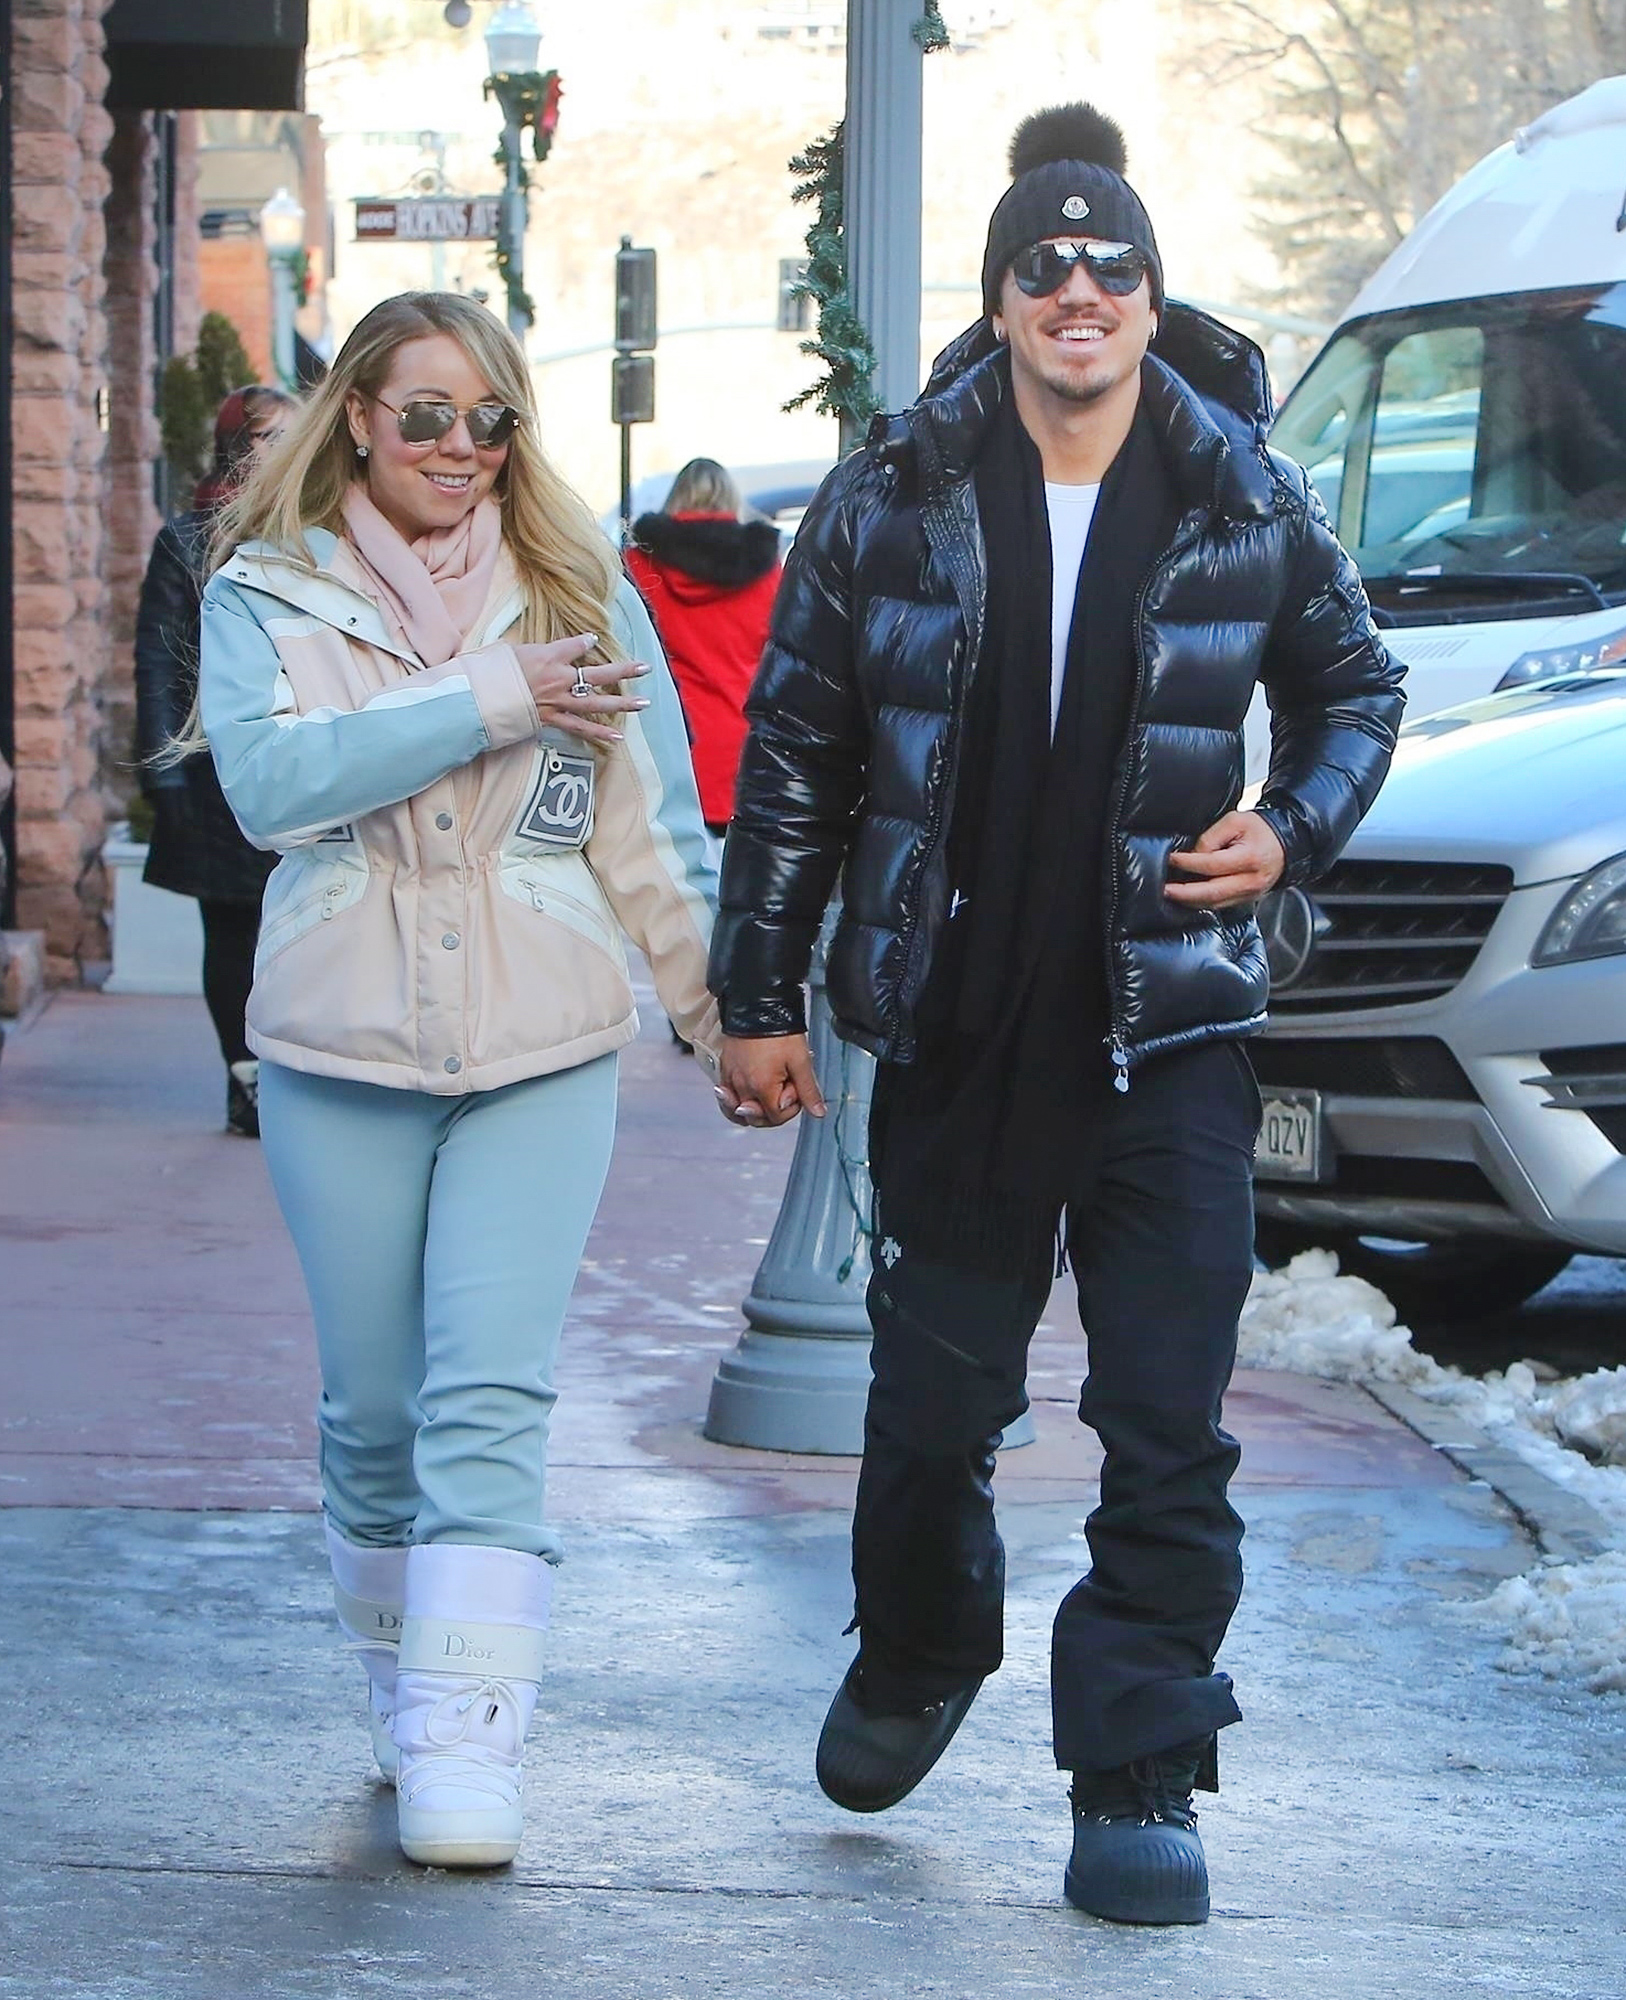 *EXCLUSIVE* Mariah Carey and Bryan Tanaka go for a Winter stroll in Aspen